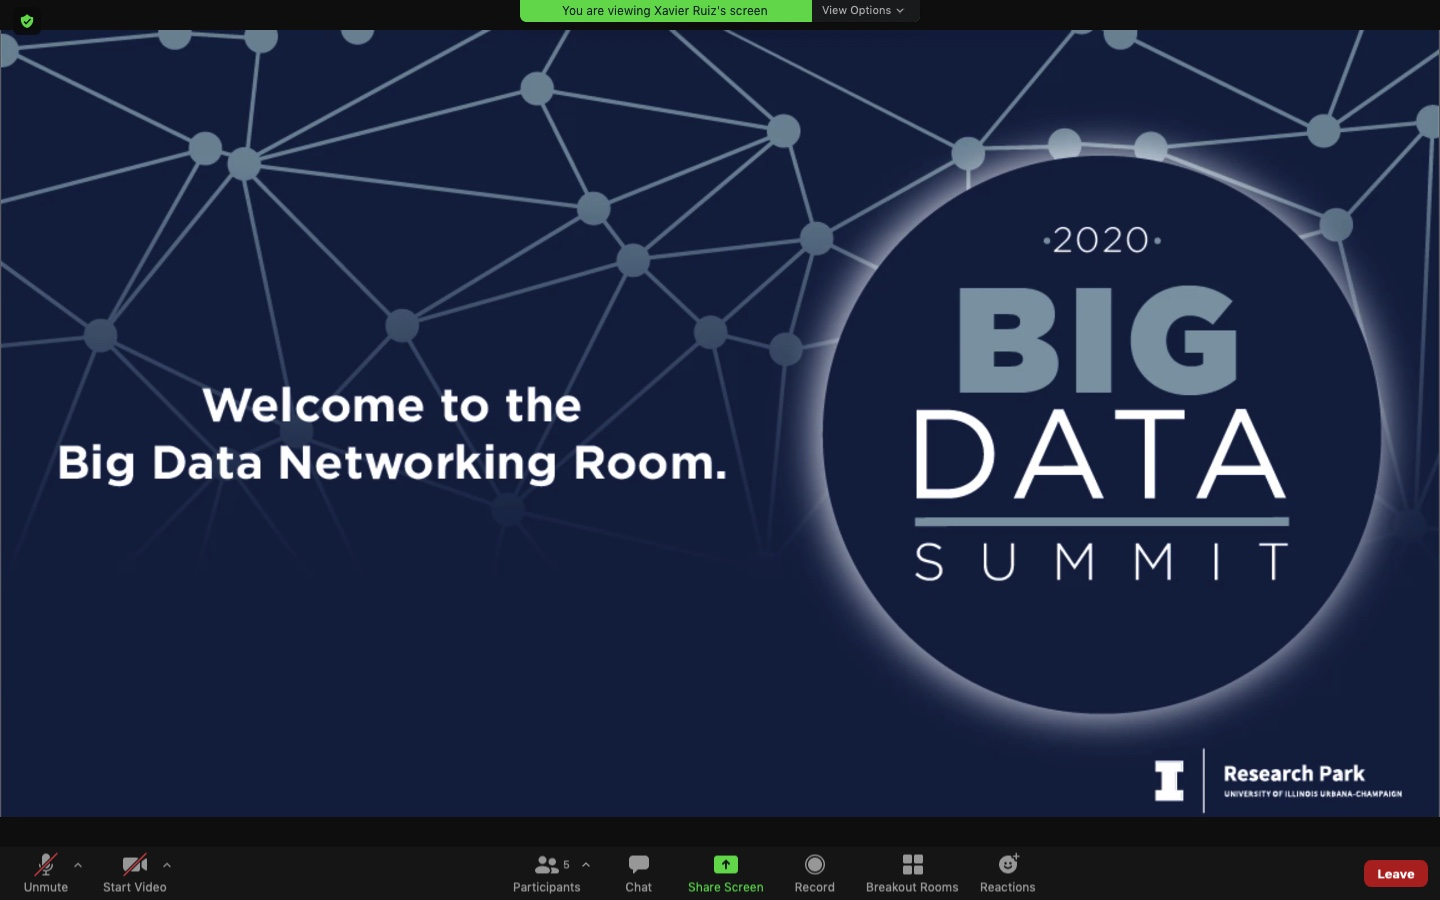 Big Data Summit 2020